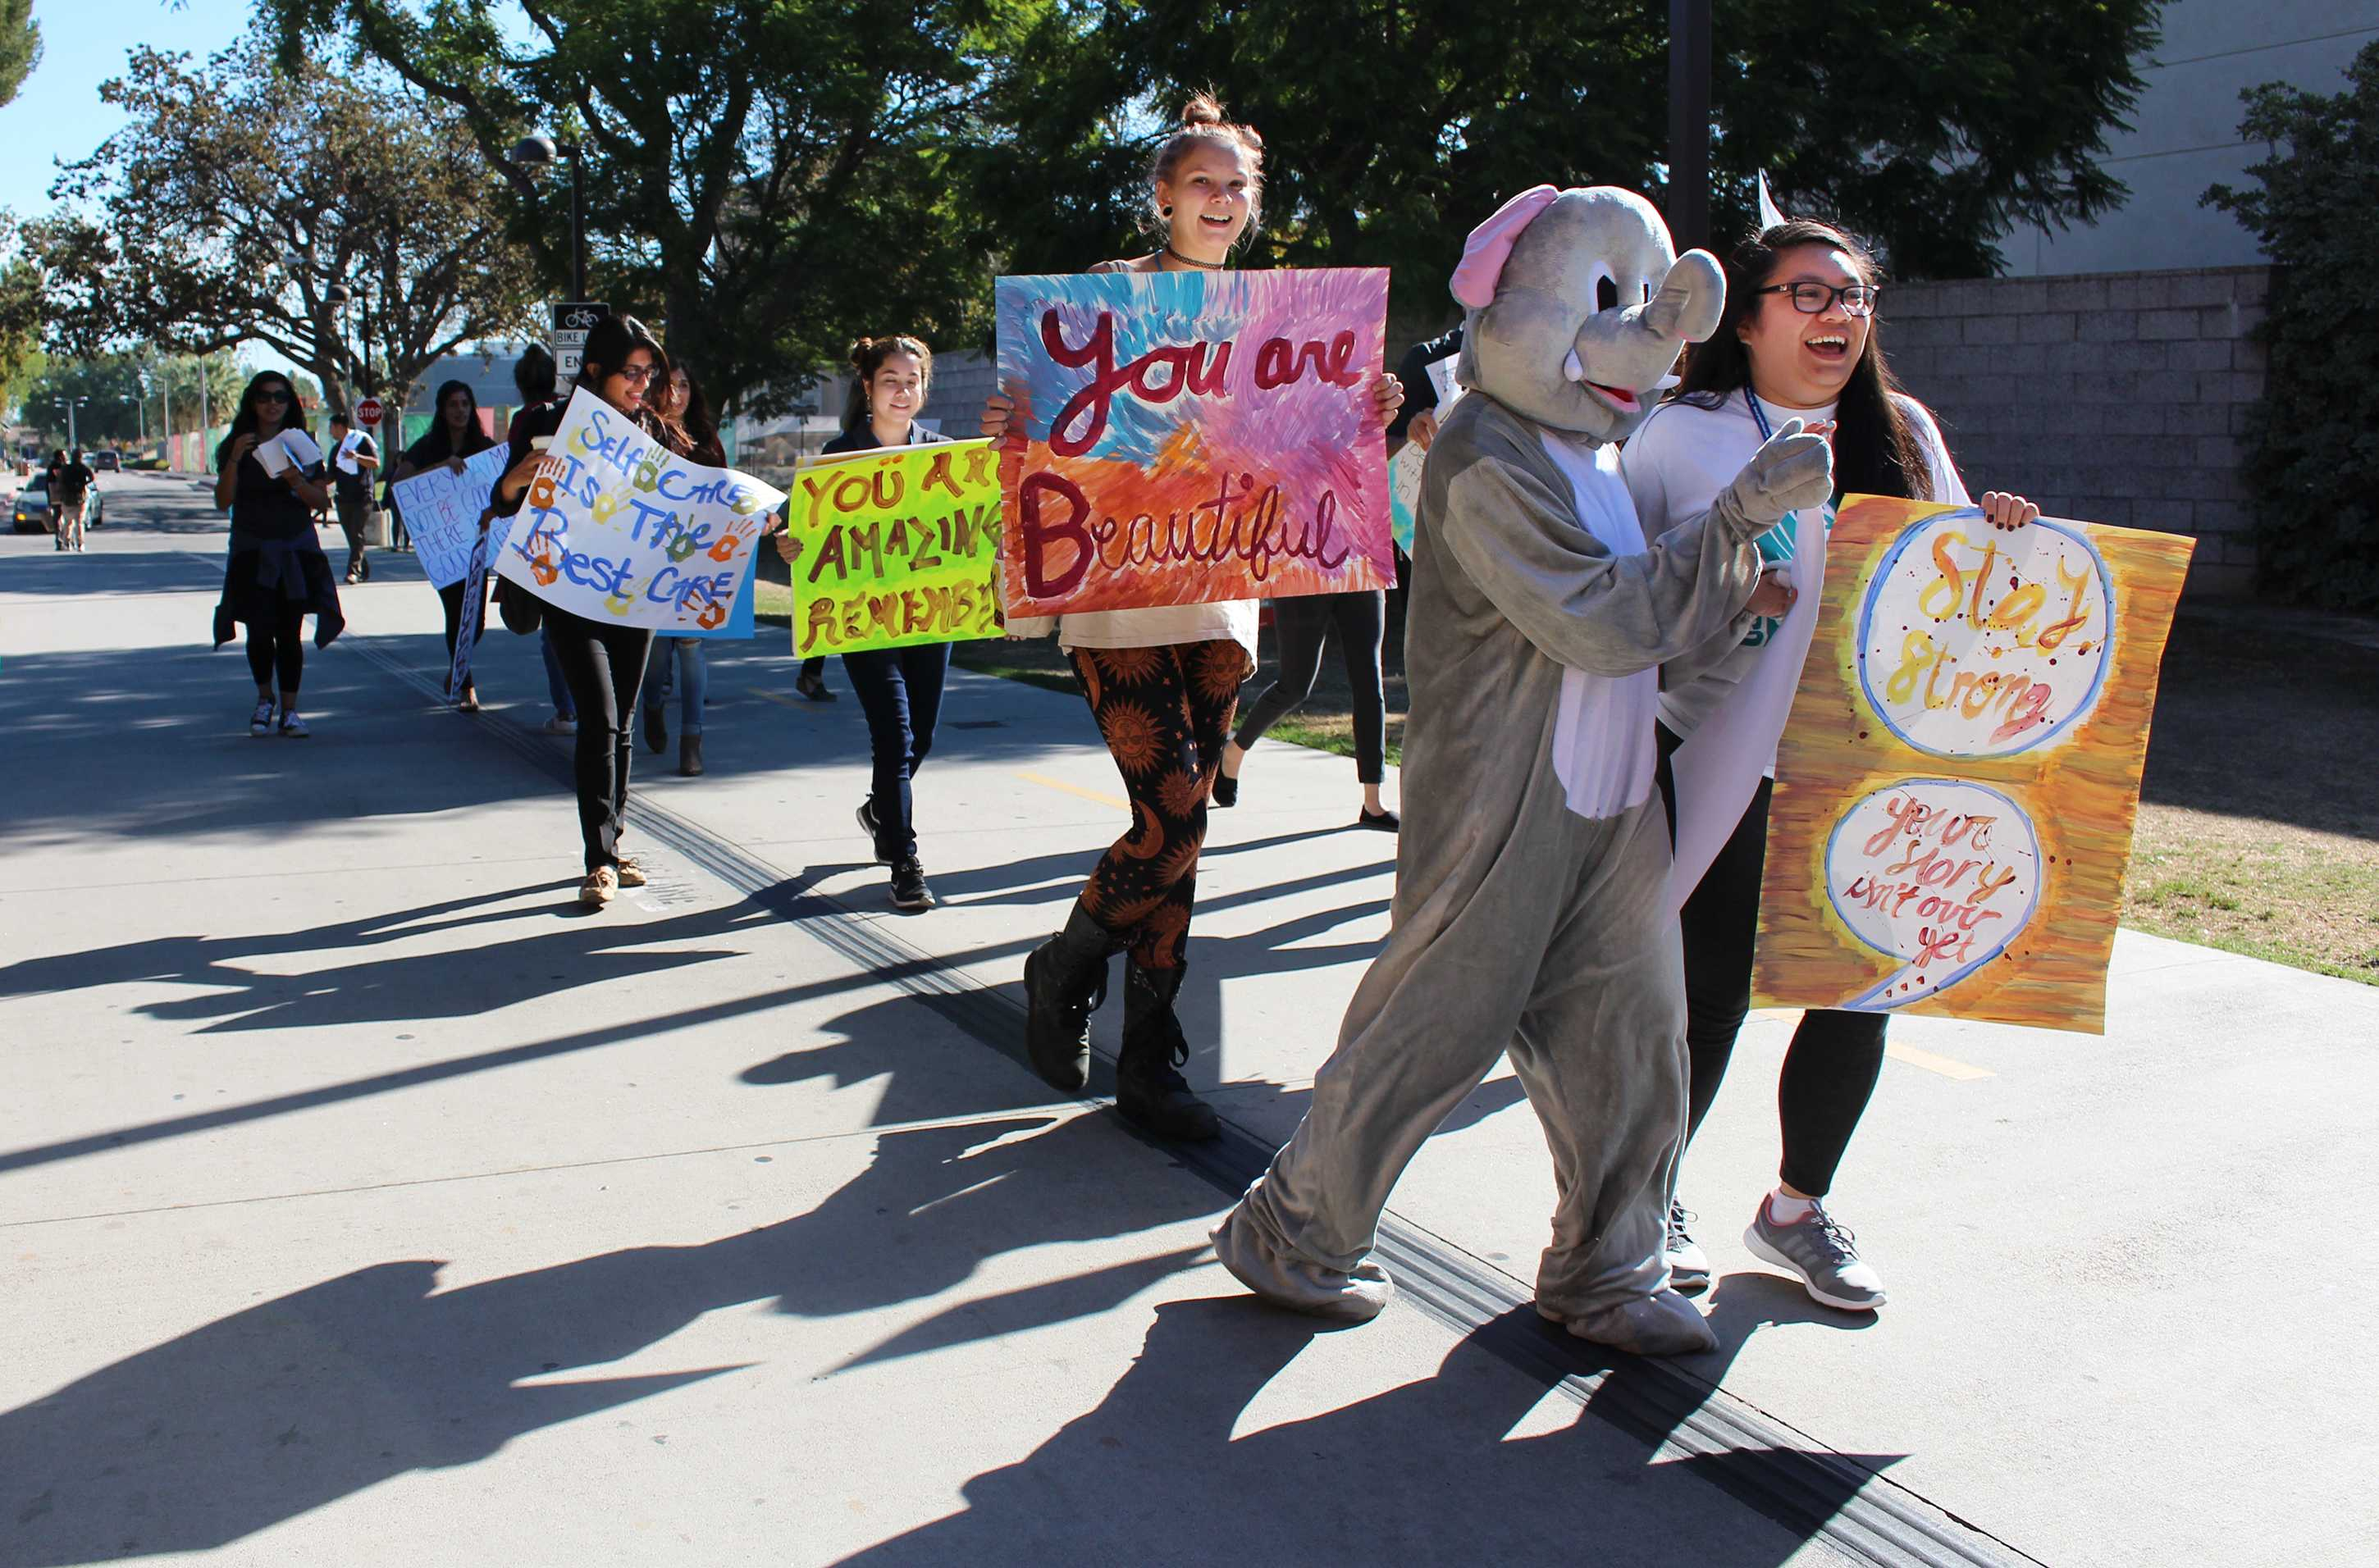 Students+marched+in+front+of+Oviatt+Lawn+to+raise+awareness+of+mental+health+in+college